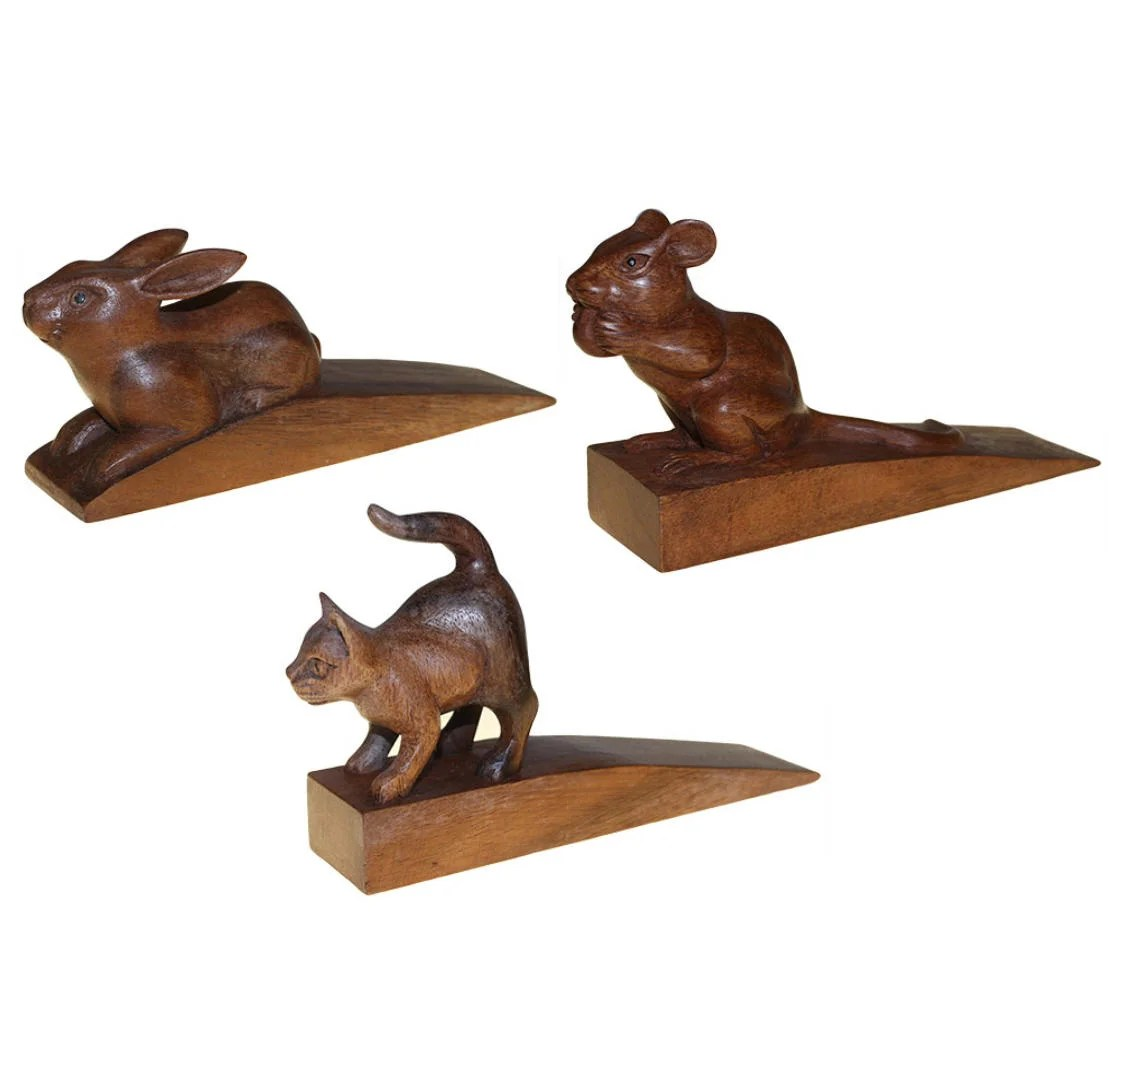 Animal Door Stops Uk Hand Carved Wooden Animal Door Stop